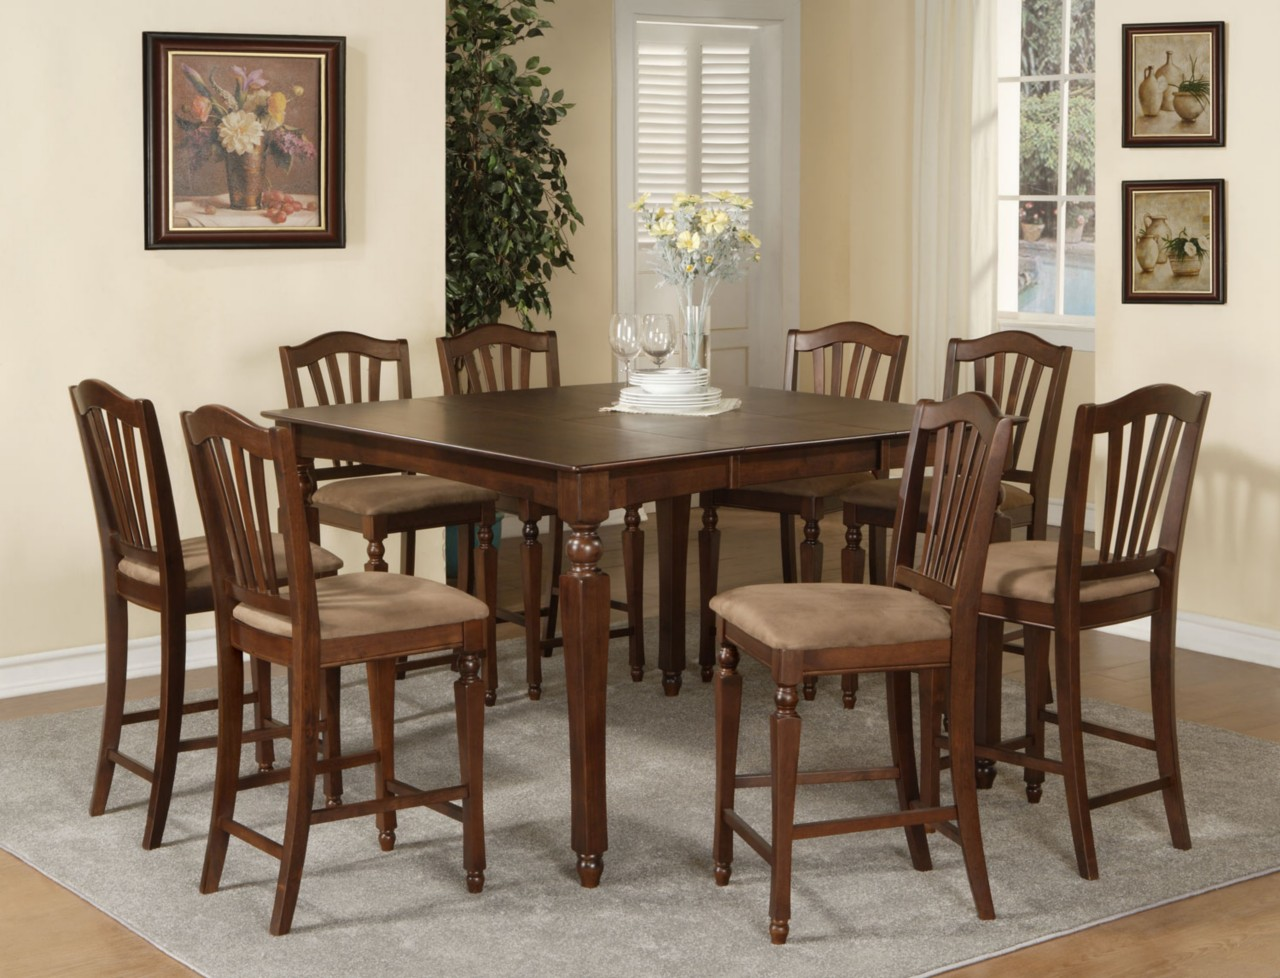 Square Dining Room Tables That Seat 8 Dining Room Square Table Seat 8 Room Ornament